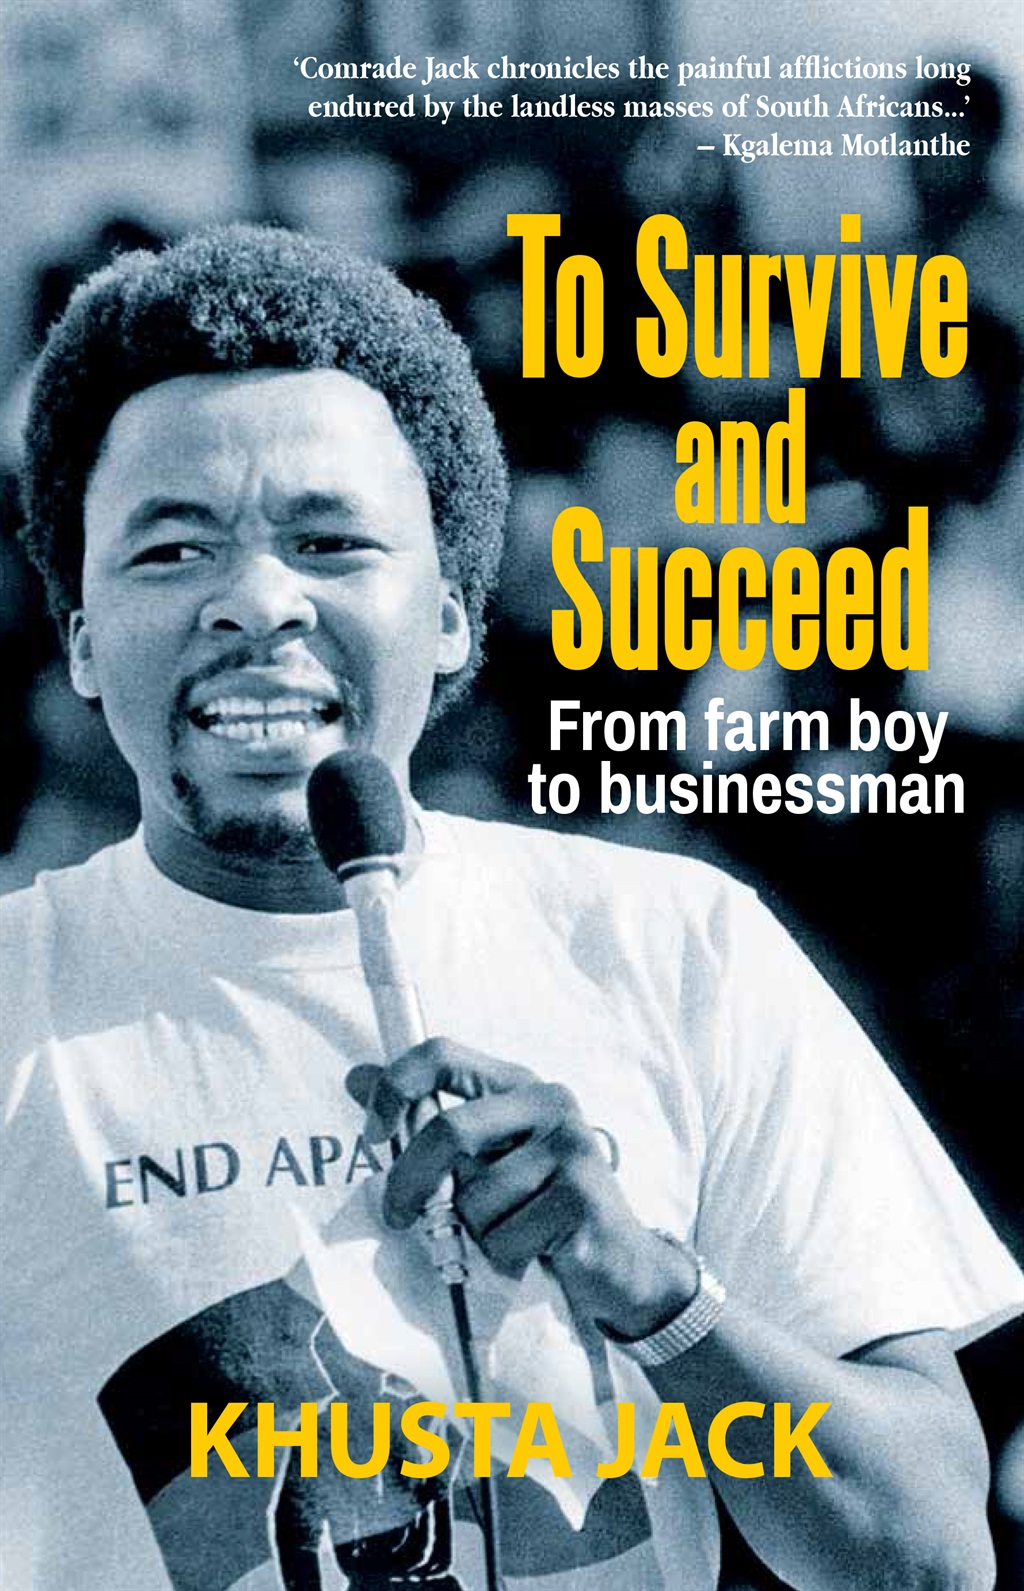 To Survive and Succeed by Khust Jack